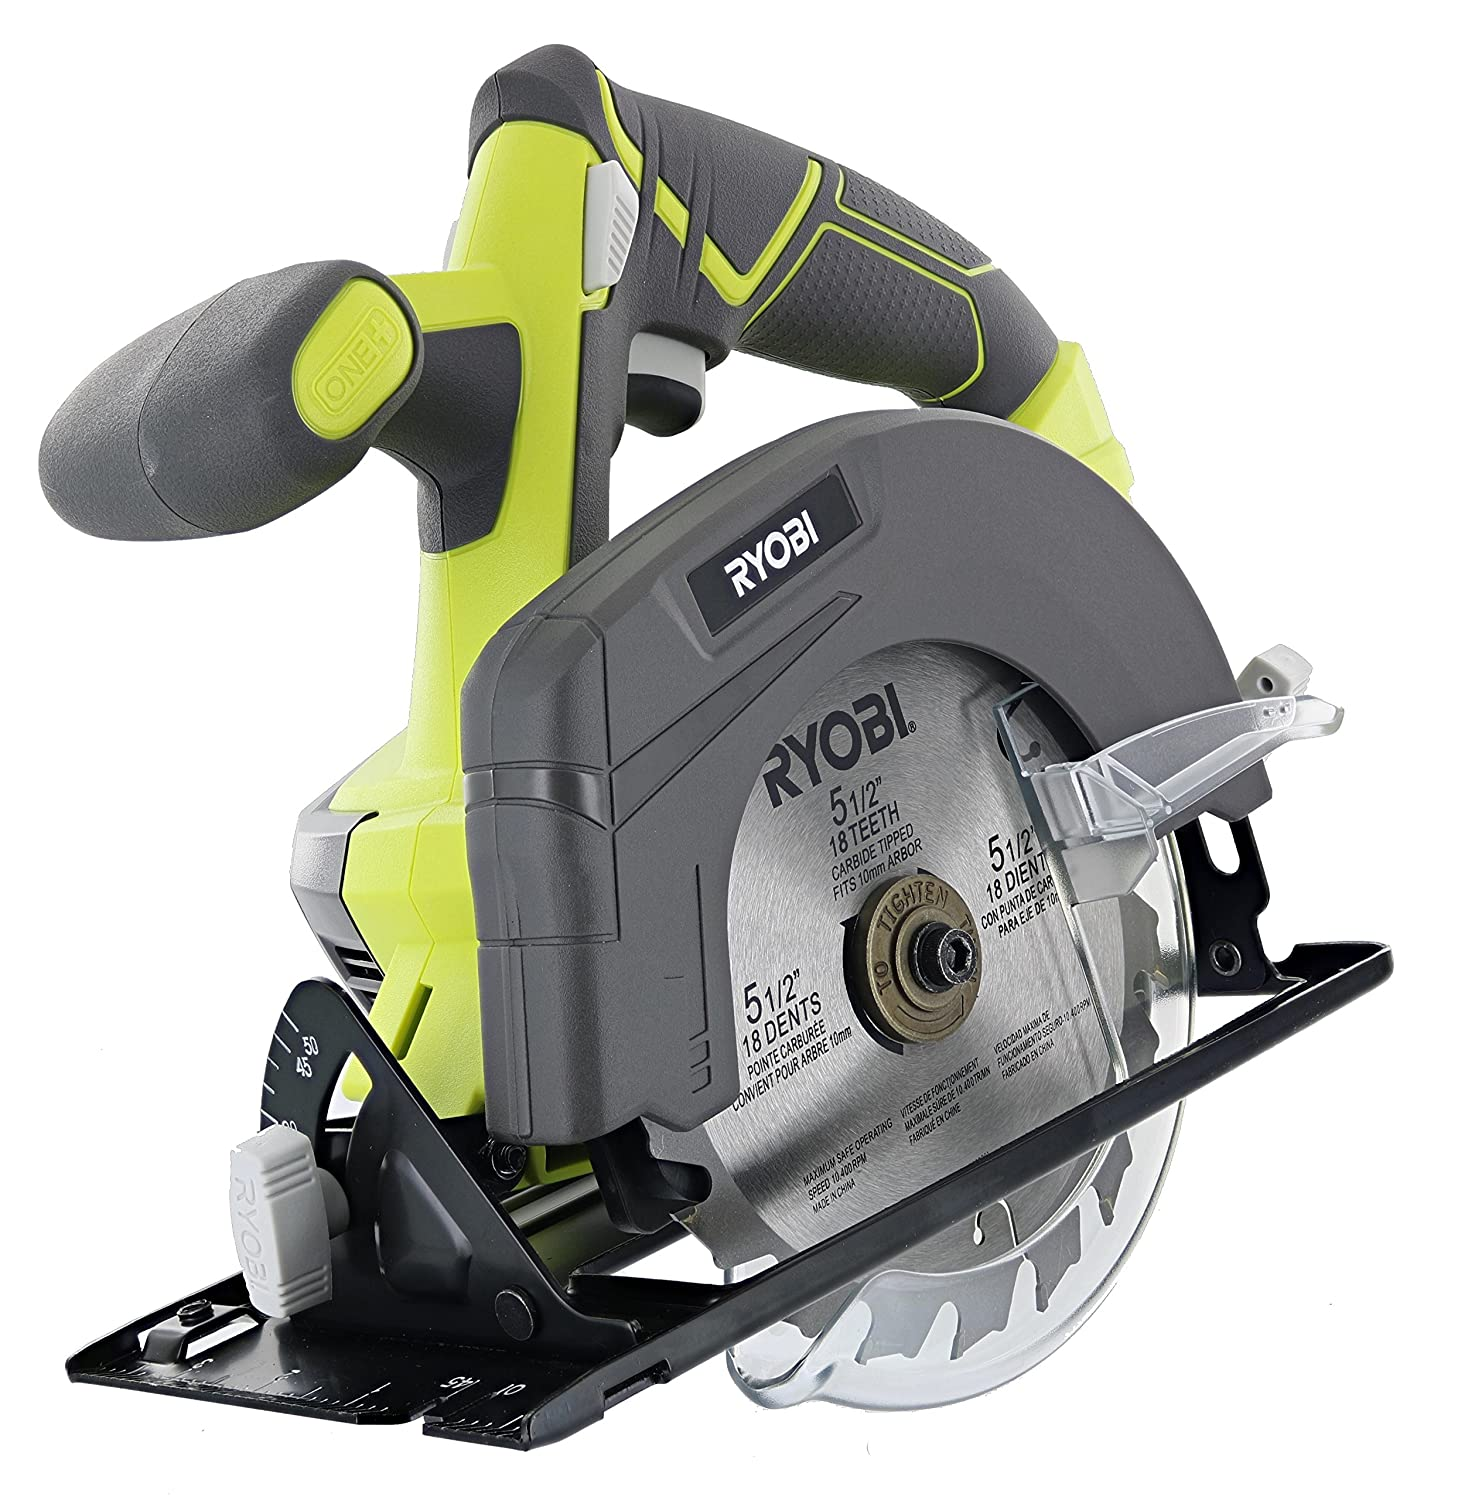 Ryobi one p505 18v lithium ion cordless 5 12 4 700 rpm circular ryobi one p505 18v lithium ion cordless 5 12 4 700 rpm circular saw battery not included power tool only green amazon keyboard keysfo